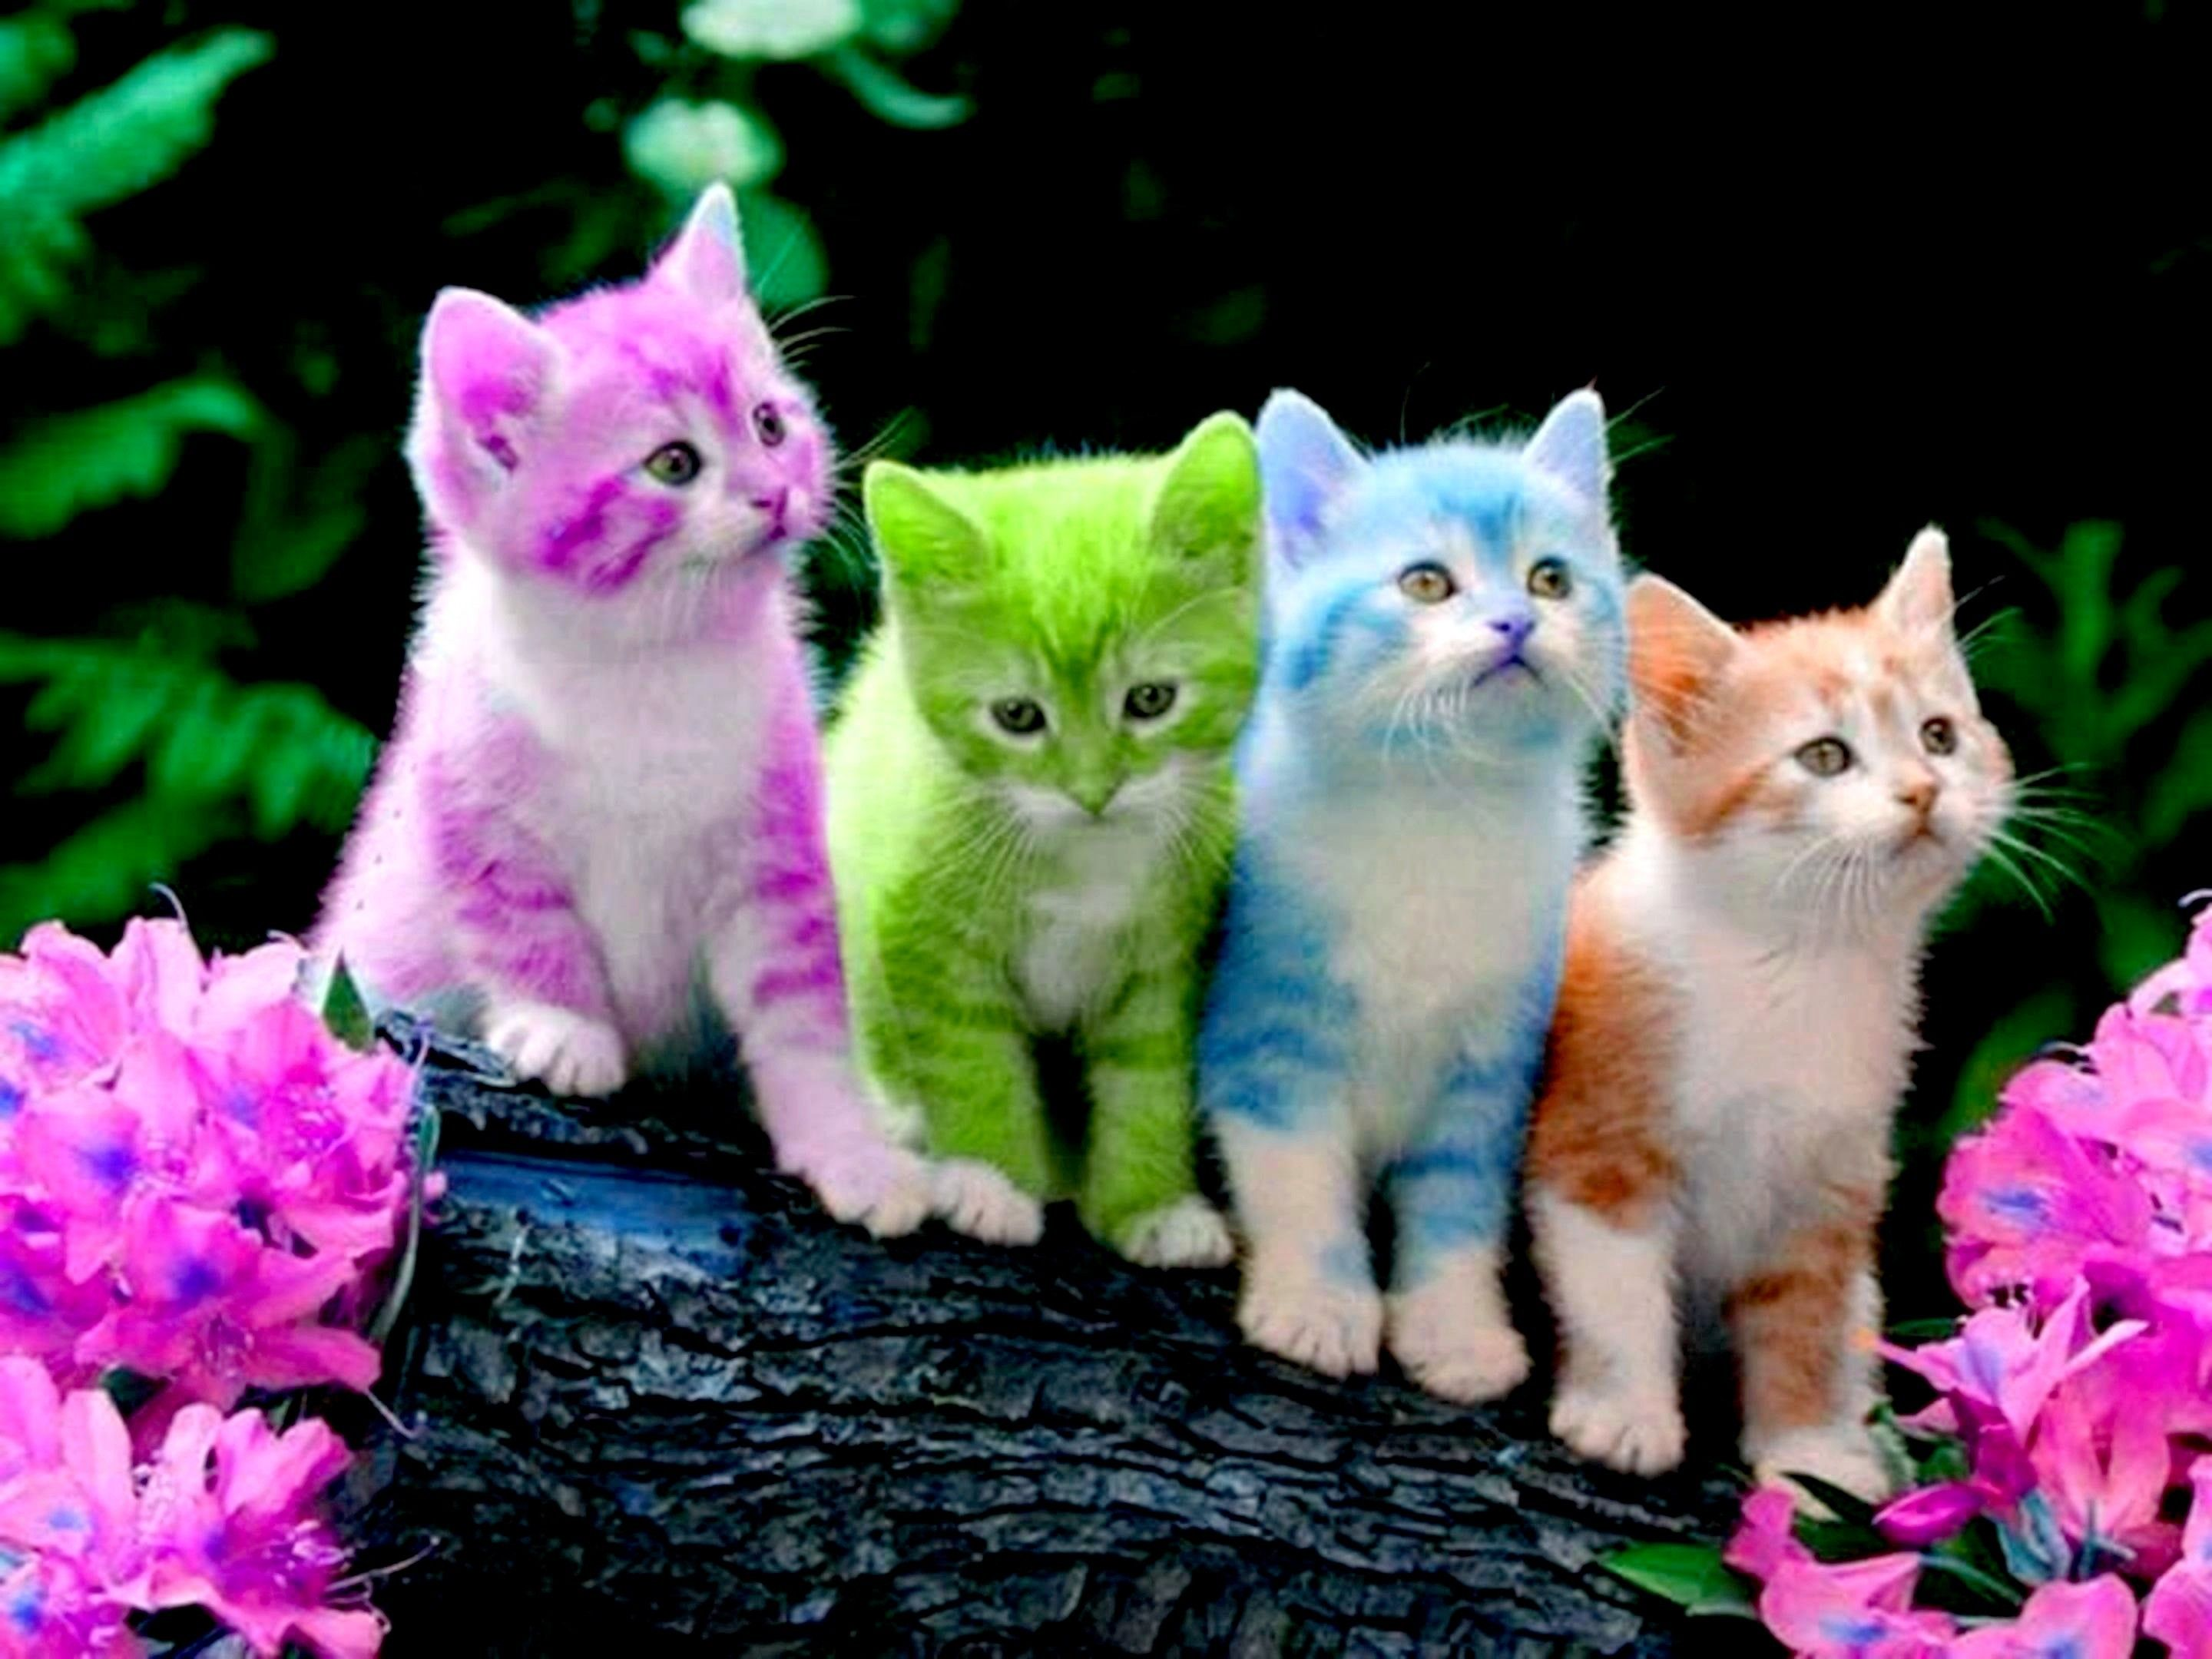 Res 2880x2160 Free Cute Kitten Wallpapers Wallpaper A Download A Animals Rainbow Kittens Cute Cats Beautiful Cats